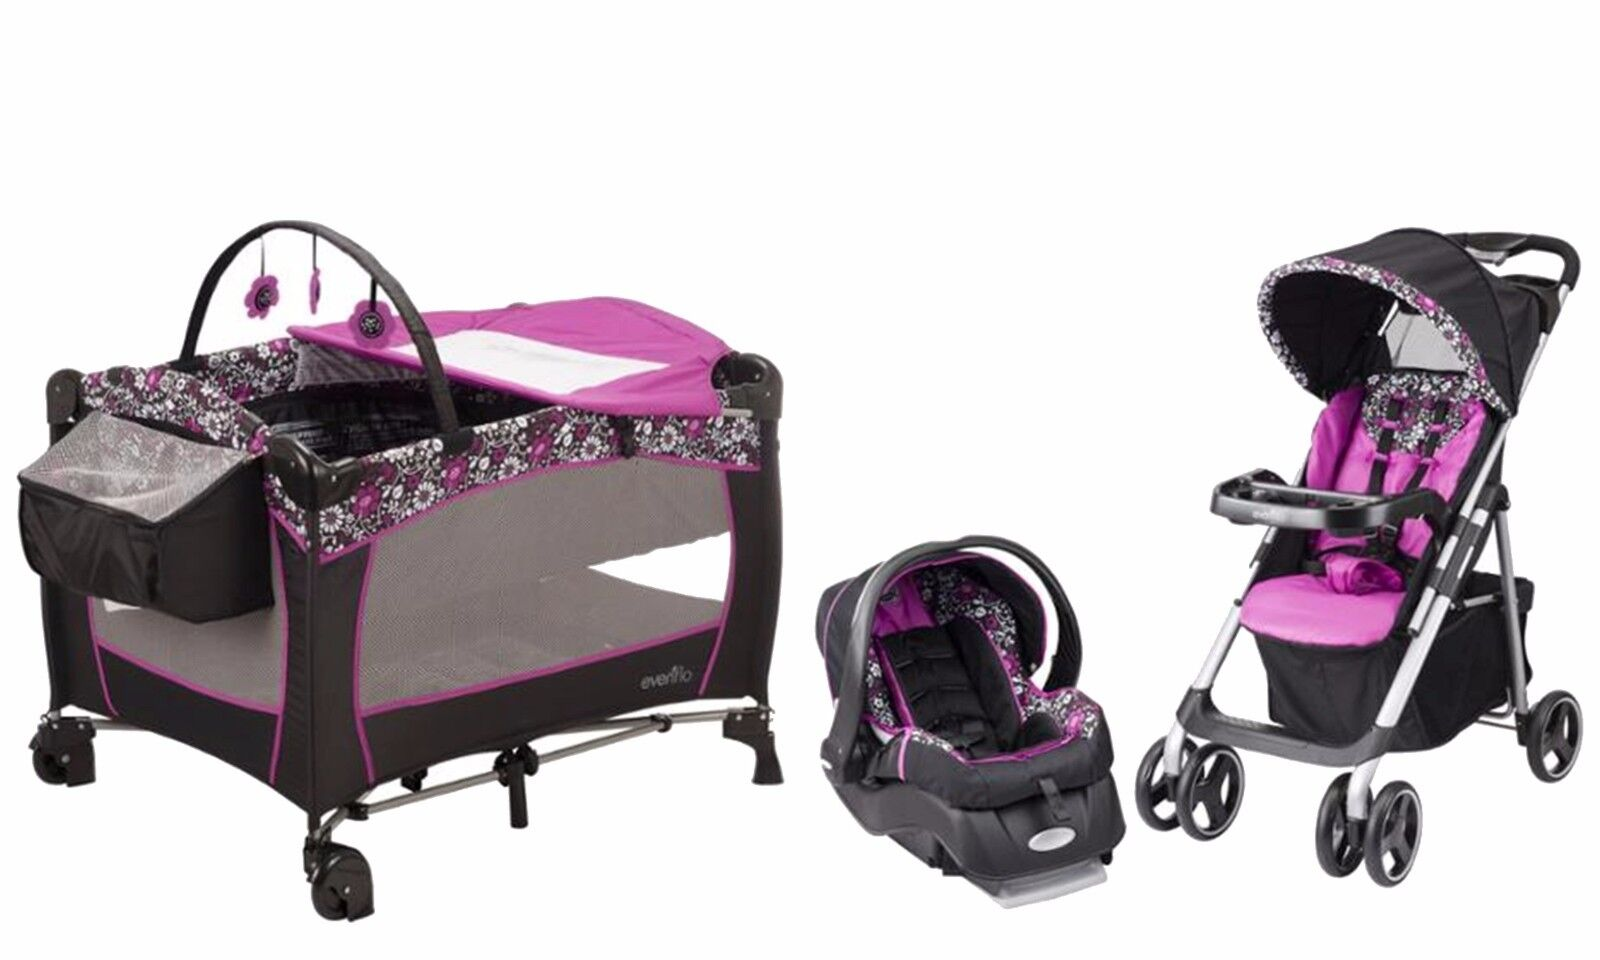 Evenflo Baby Stroller Car Seat Infant Playard Travel System Combo Set 1 Of 11Only 0 Available